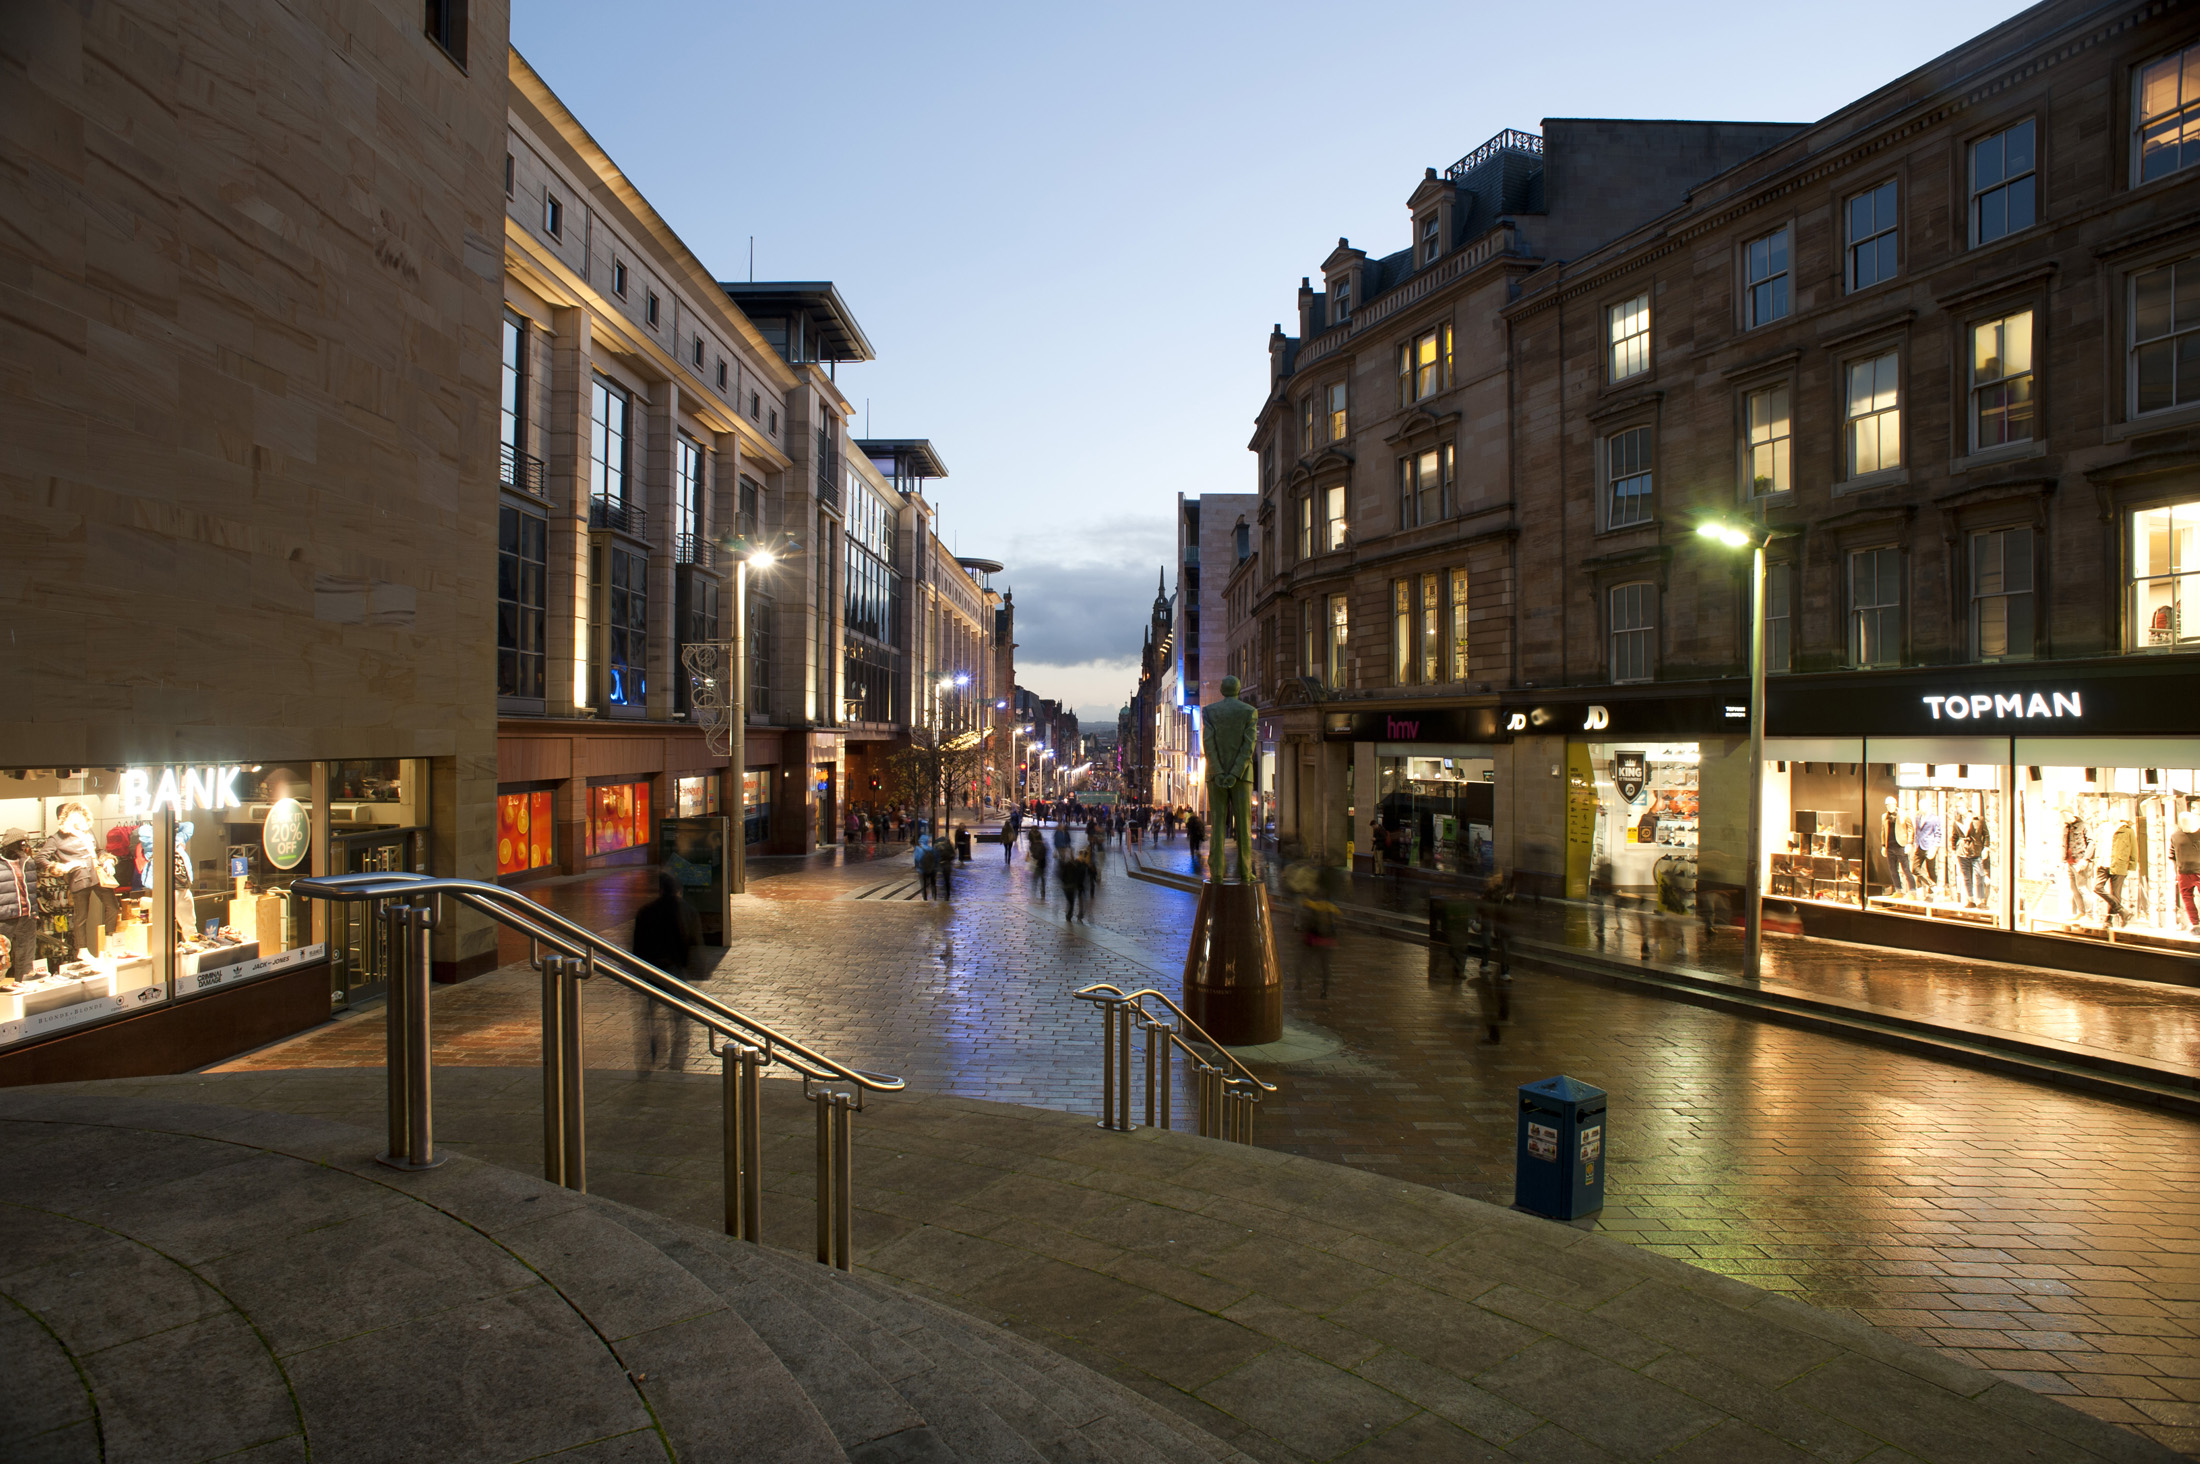 Buchanan Street in central Glasgow at night with the windows of the shops illuminated with bright lights reflected on the street below